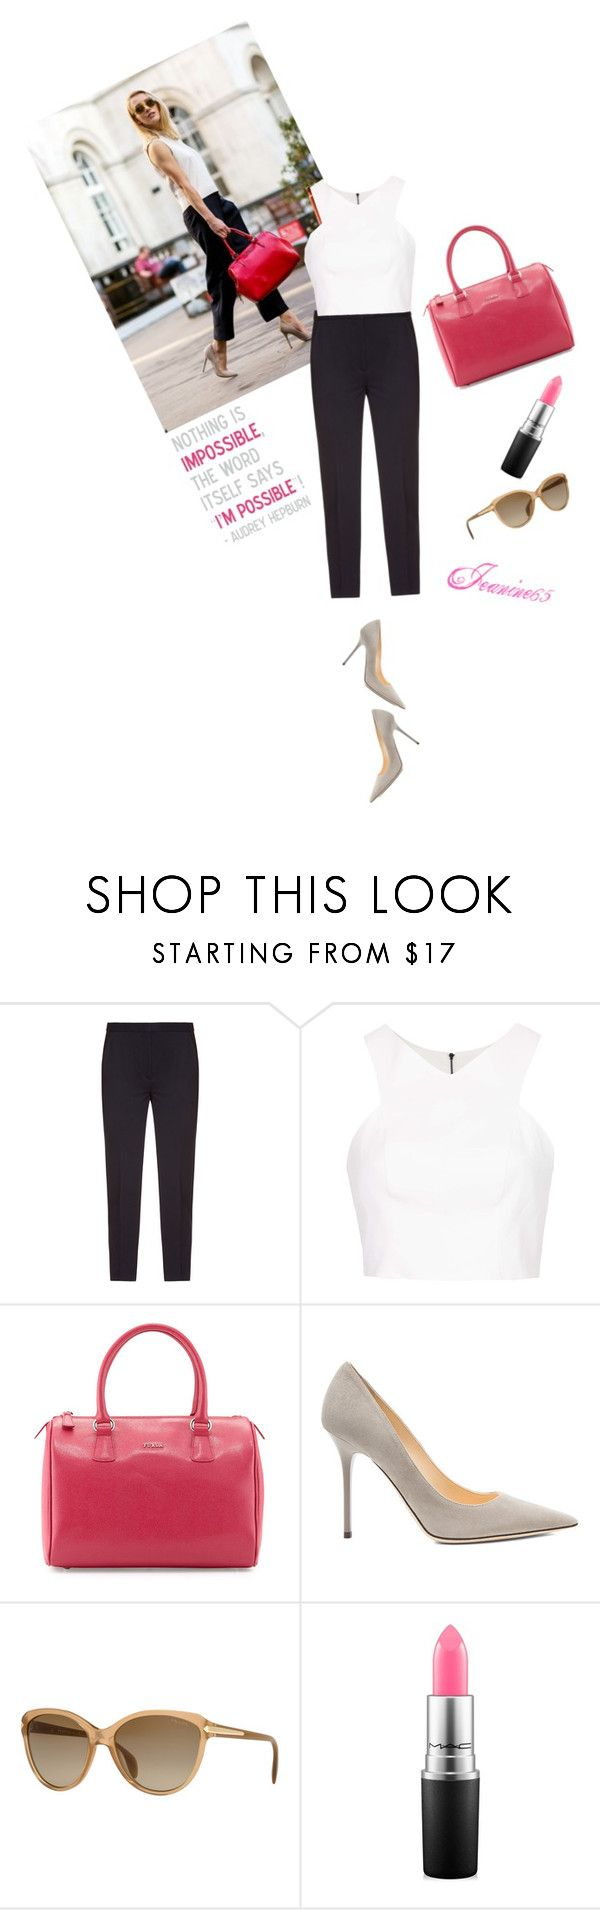 """""""Nothing is impossible the word itself says I'm possible!"""" Audrey Hepburn by jeanine65 on Polyvore featuring Topshop, Alexander McQueen, Jimmy Choo, Furla, Prada, MAC Cosmetics and Avenue"""